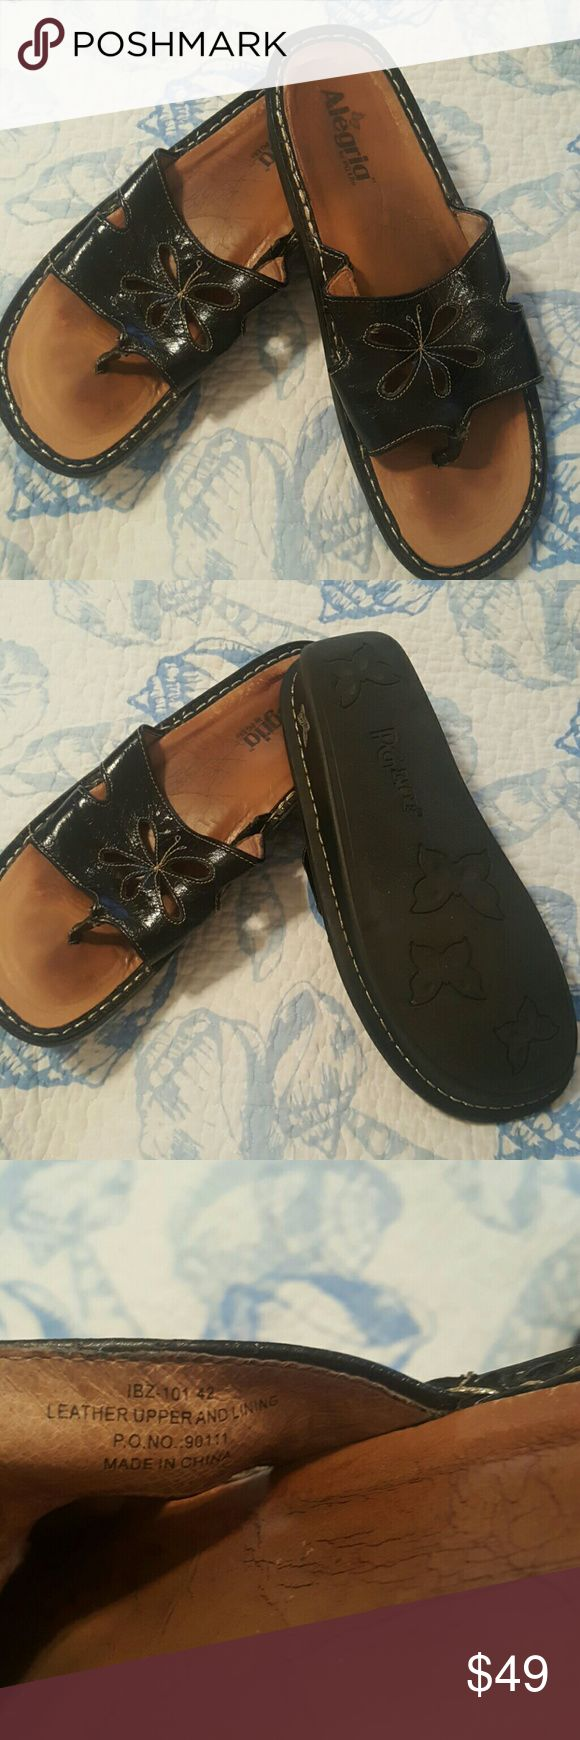 Alegria Black leather sandals These are a pair of Alegria sandals from my non smoking home. In awesome shape. Very little wear shown. So very comfortable. Size 42. I wear a 10 normally. Alegria  Shoes Sandals